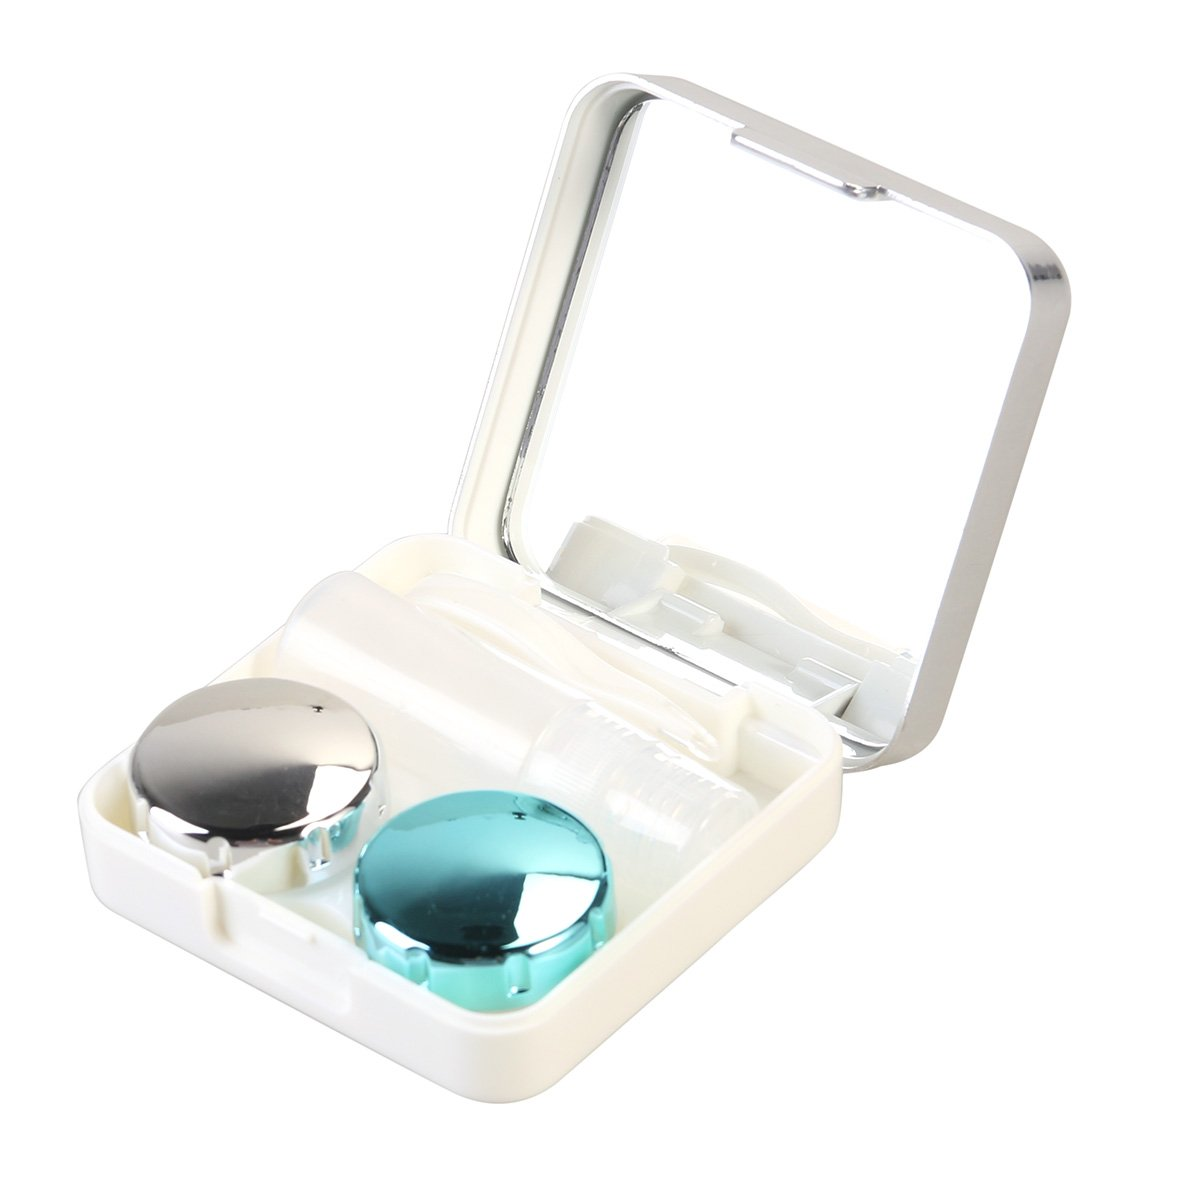 ULTNICE Travel Contact Lens Case Mini Box Container Contact Lens Holder (Silver white) by ULTNICE (Image #1)